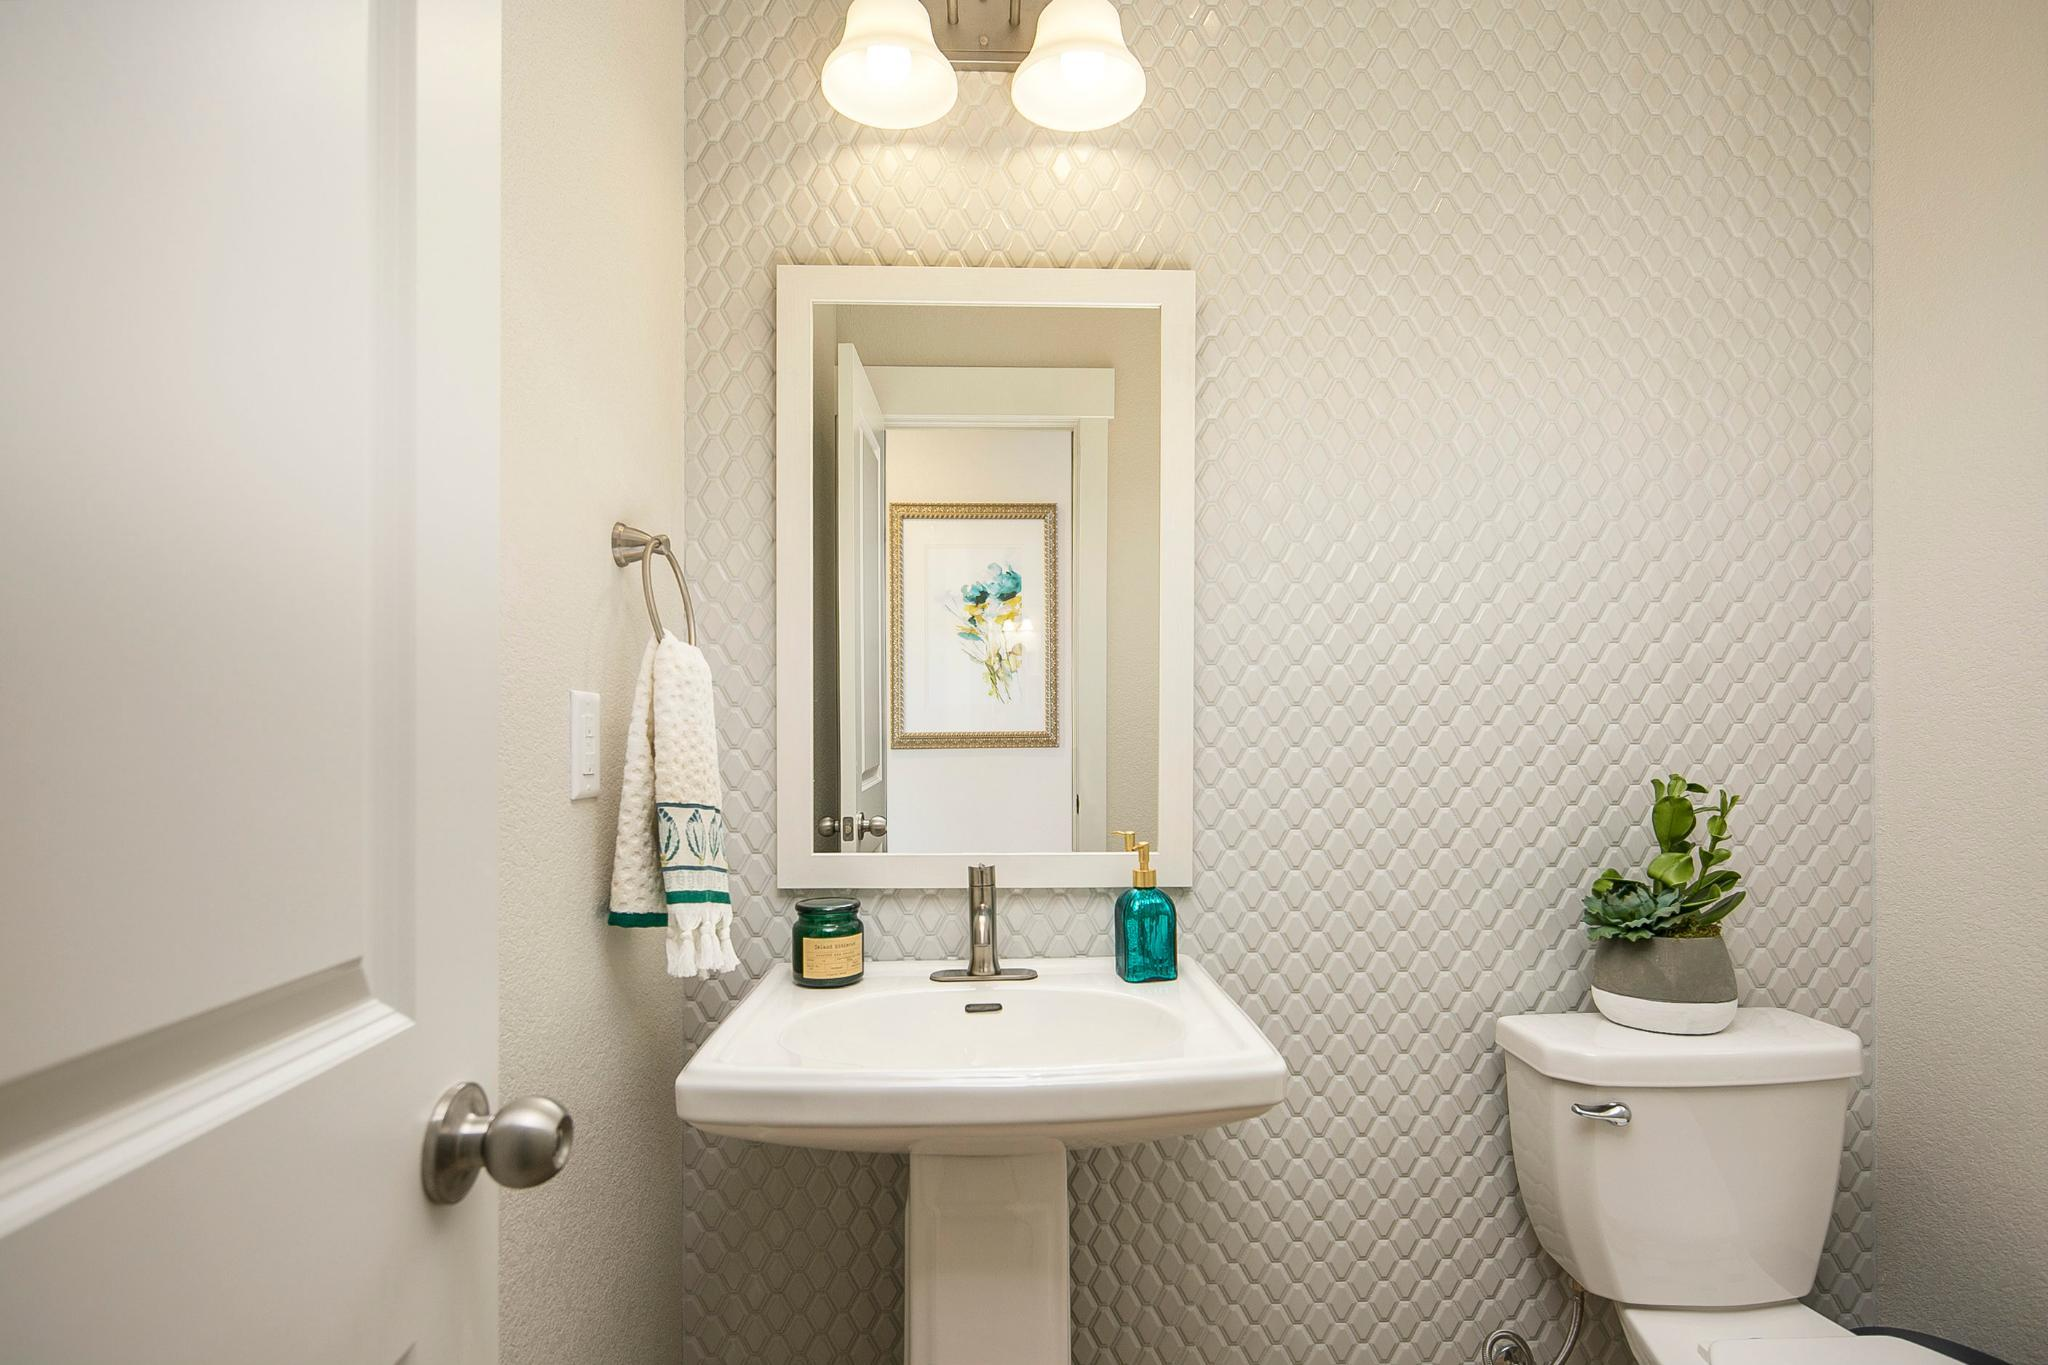 Bathroom featured in the Plan C505 By American Legend Homes in Greeley, CO